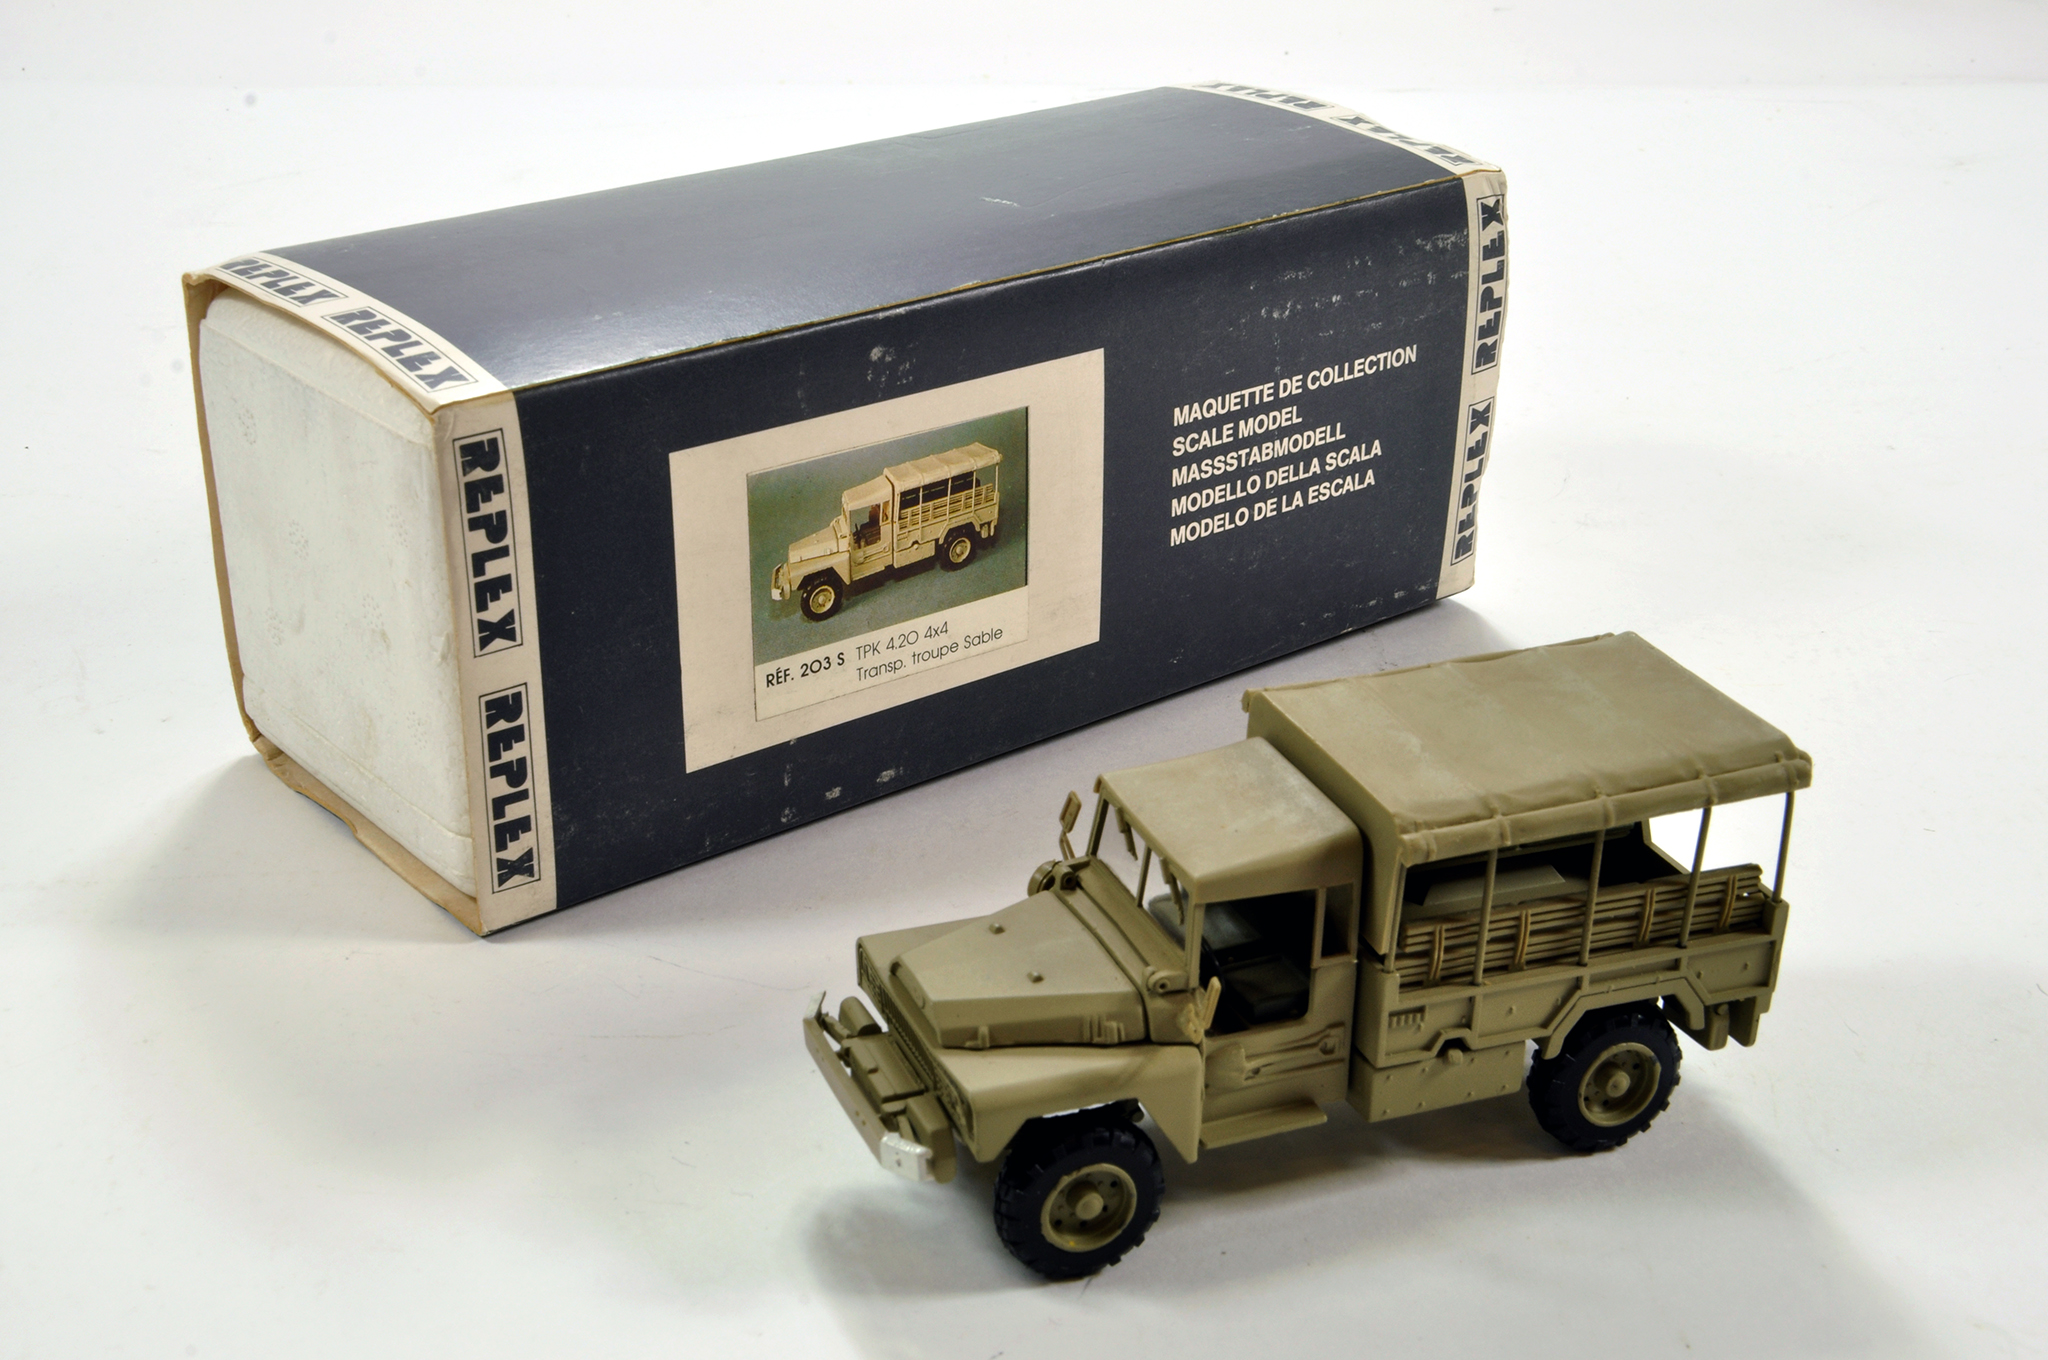 Lot 1084 - Replex (France) 1/50 High Detail Acmat TPK 4.20 Troop Carrier. Scarce issue is NM in Box.